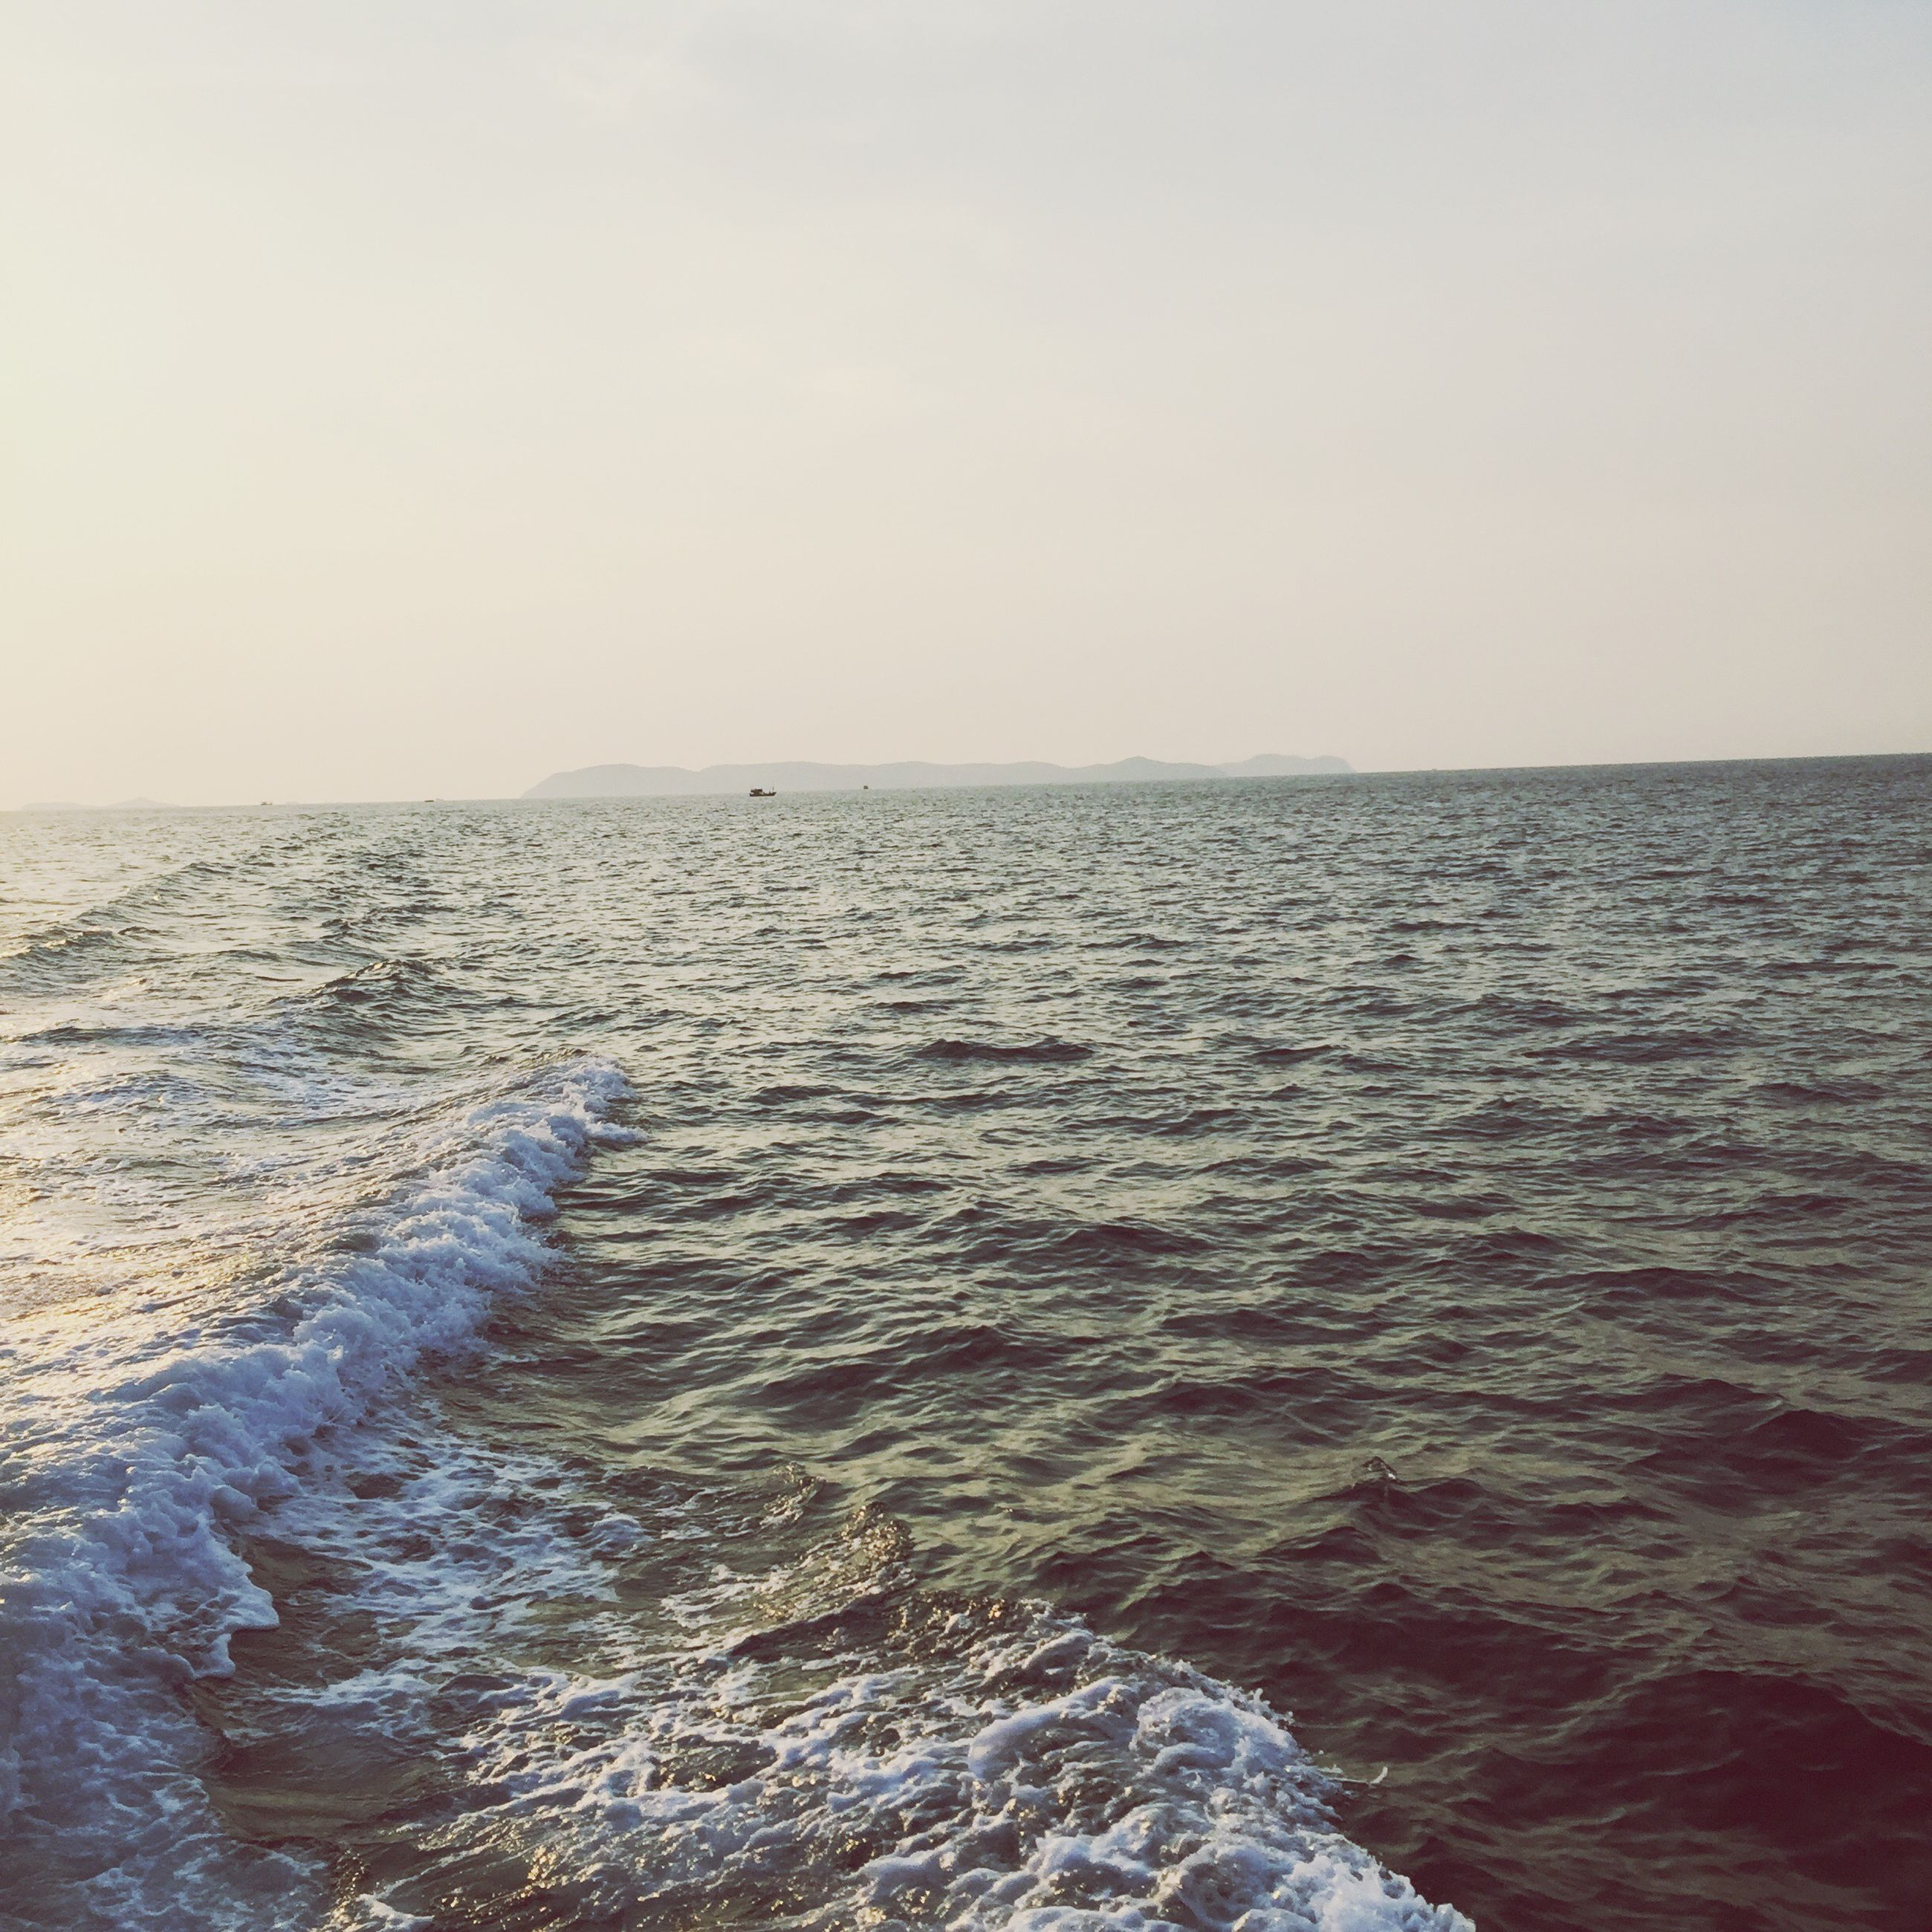 water, sea, horizon over water, scenics, tranquil scene, clear sky, tranquility, beauty in nature, copy space, waterfront, rippled, nature, seascape, idyllic, wave, sky, remote, outdoors, no people, day